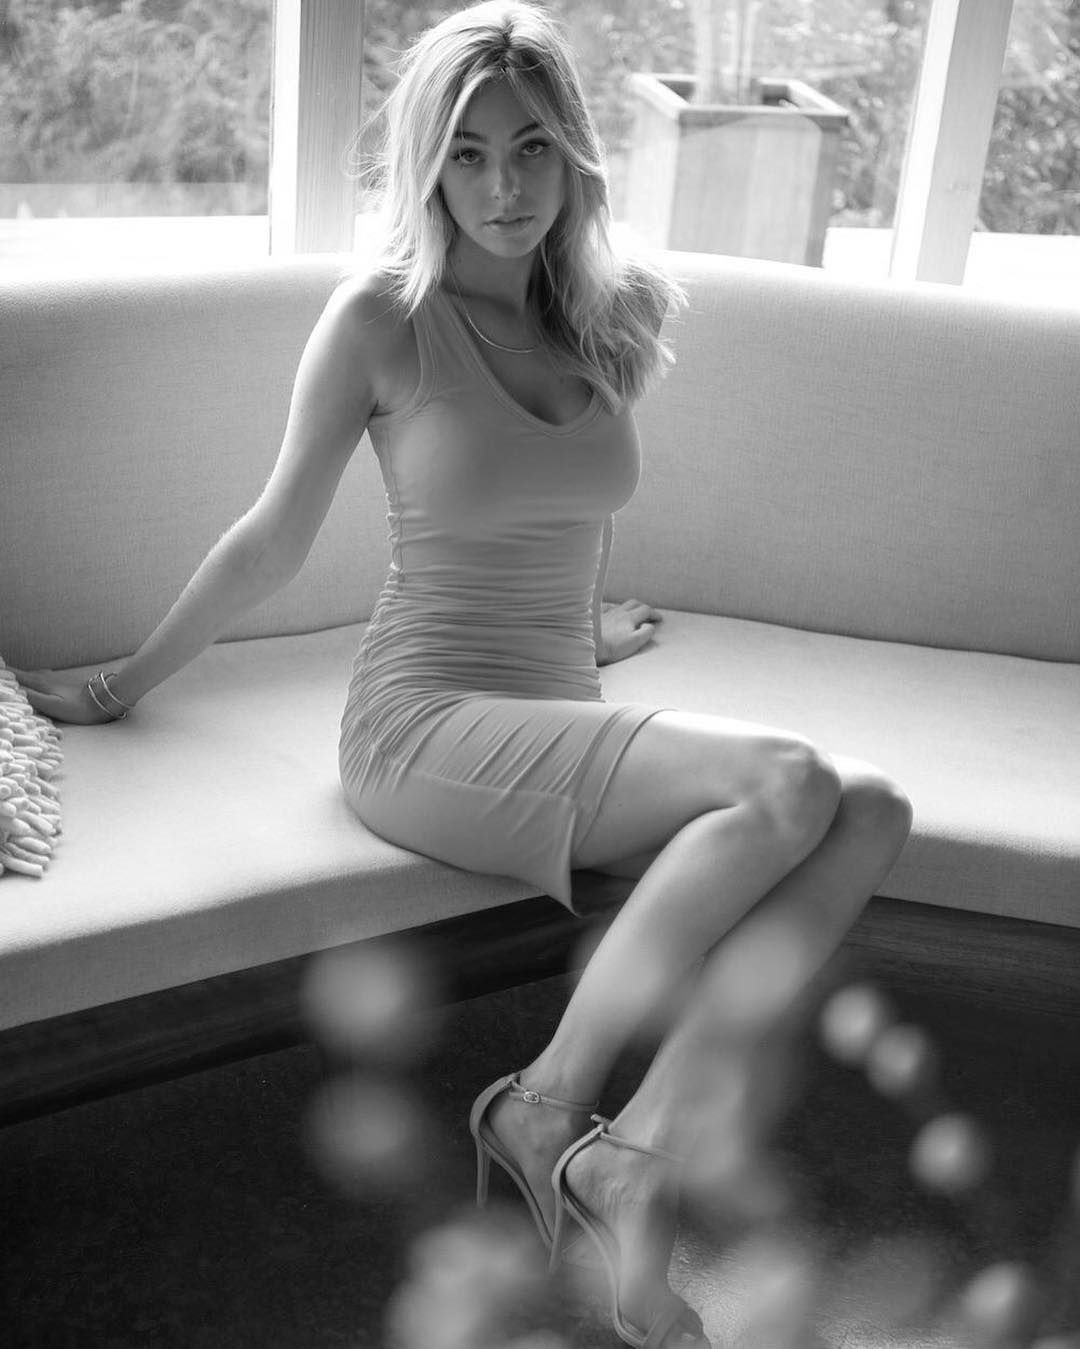 Hot Elizabeth Turner nudes (29 photo), Topless, Paparazzi, Instagram, bra 2017